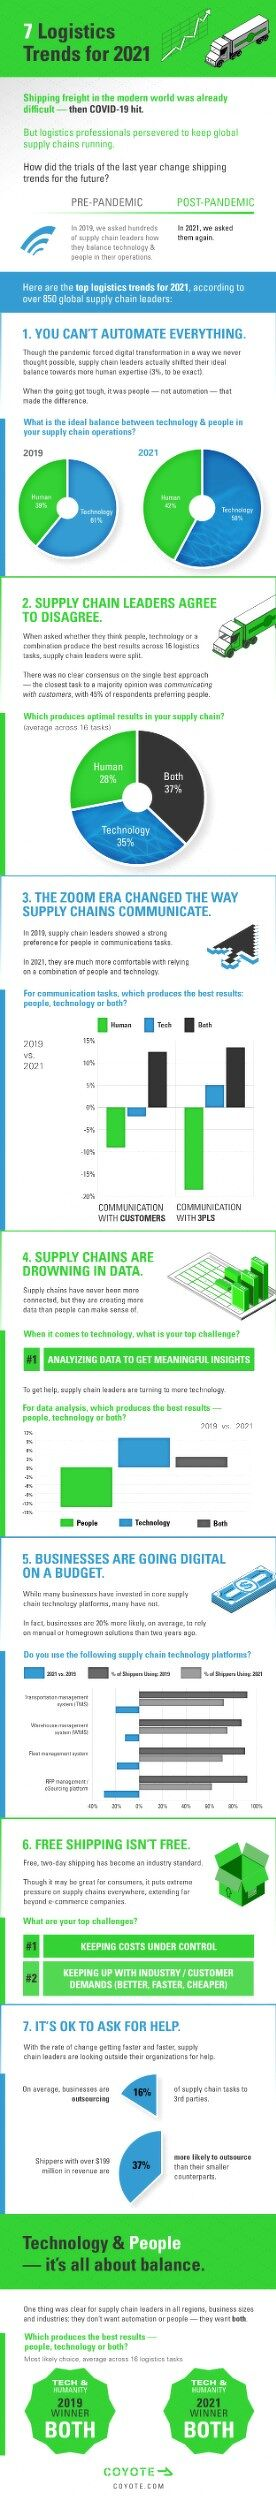 2021 Logistics Trends: Download the Infographic